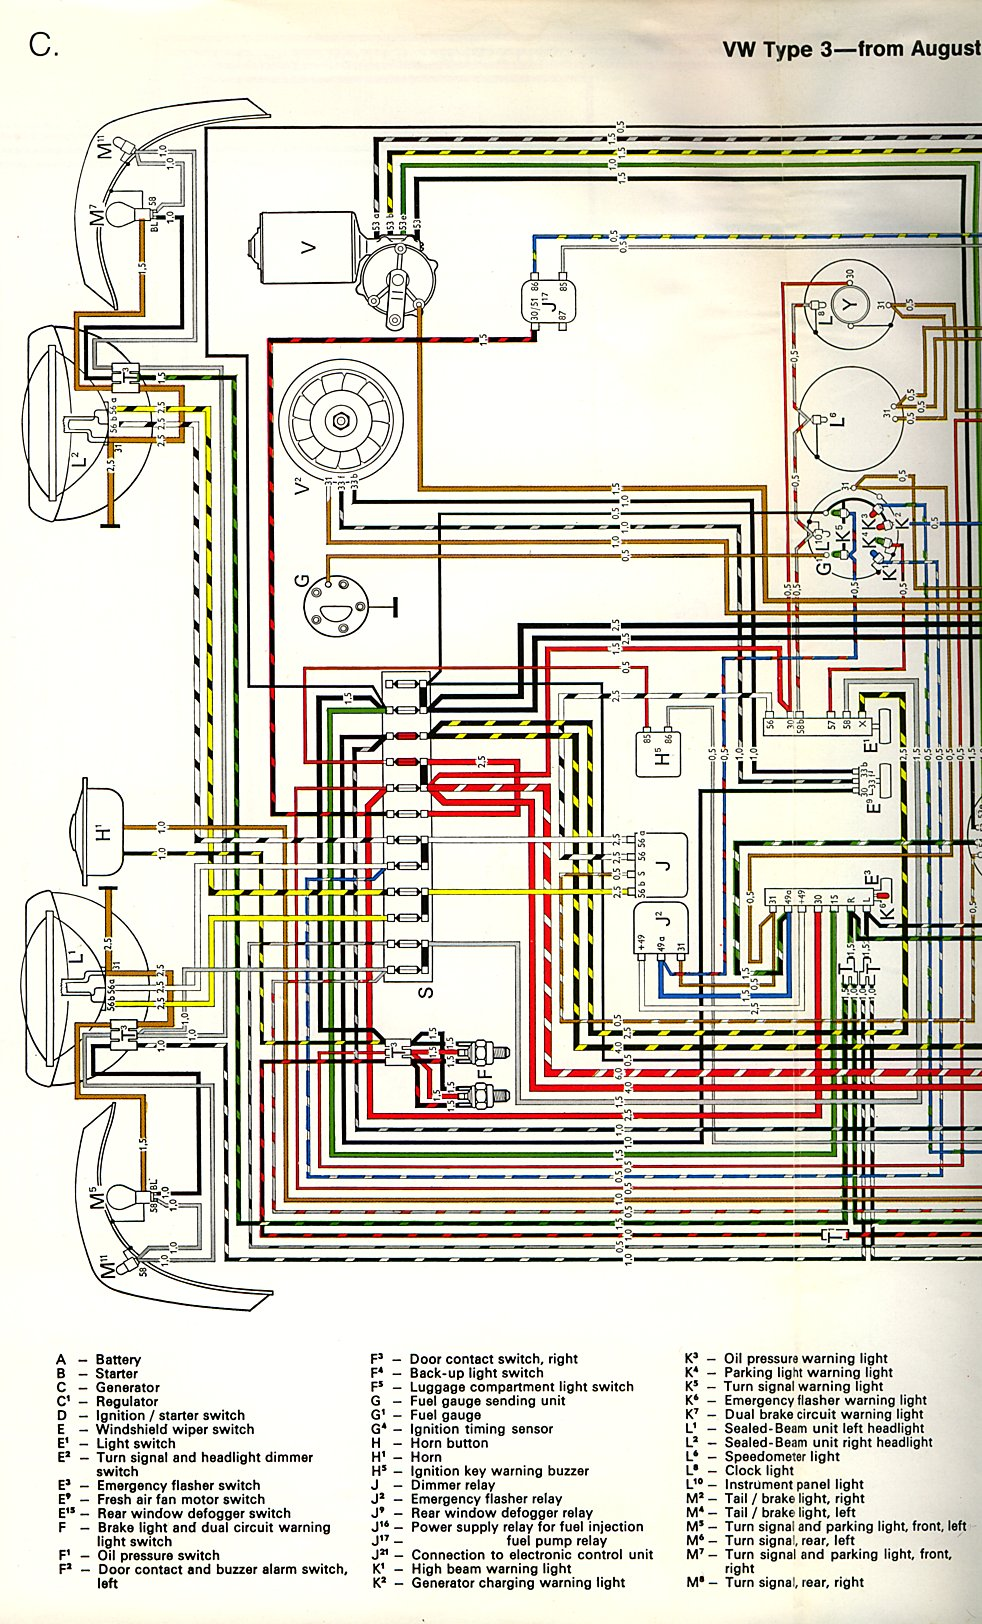 thesamba com type 3 wiring diagrams 1973 VW Beetle Fuse Box Diagram at 1973 Vw Bug Instrument Panel Wiring Diagram